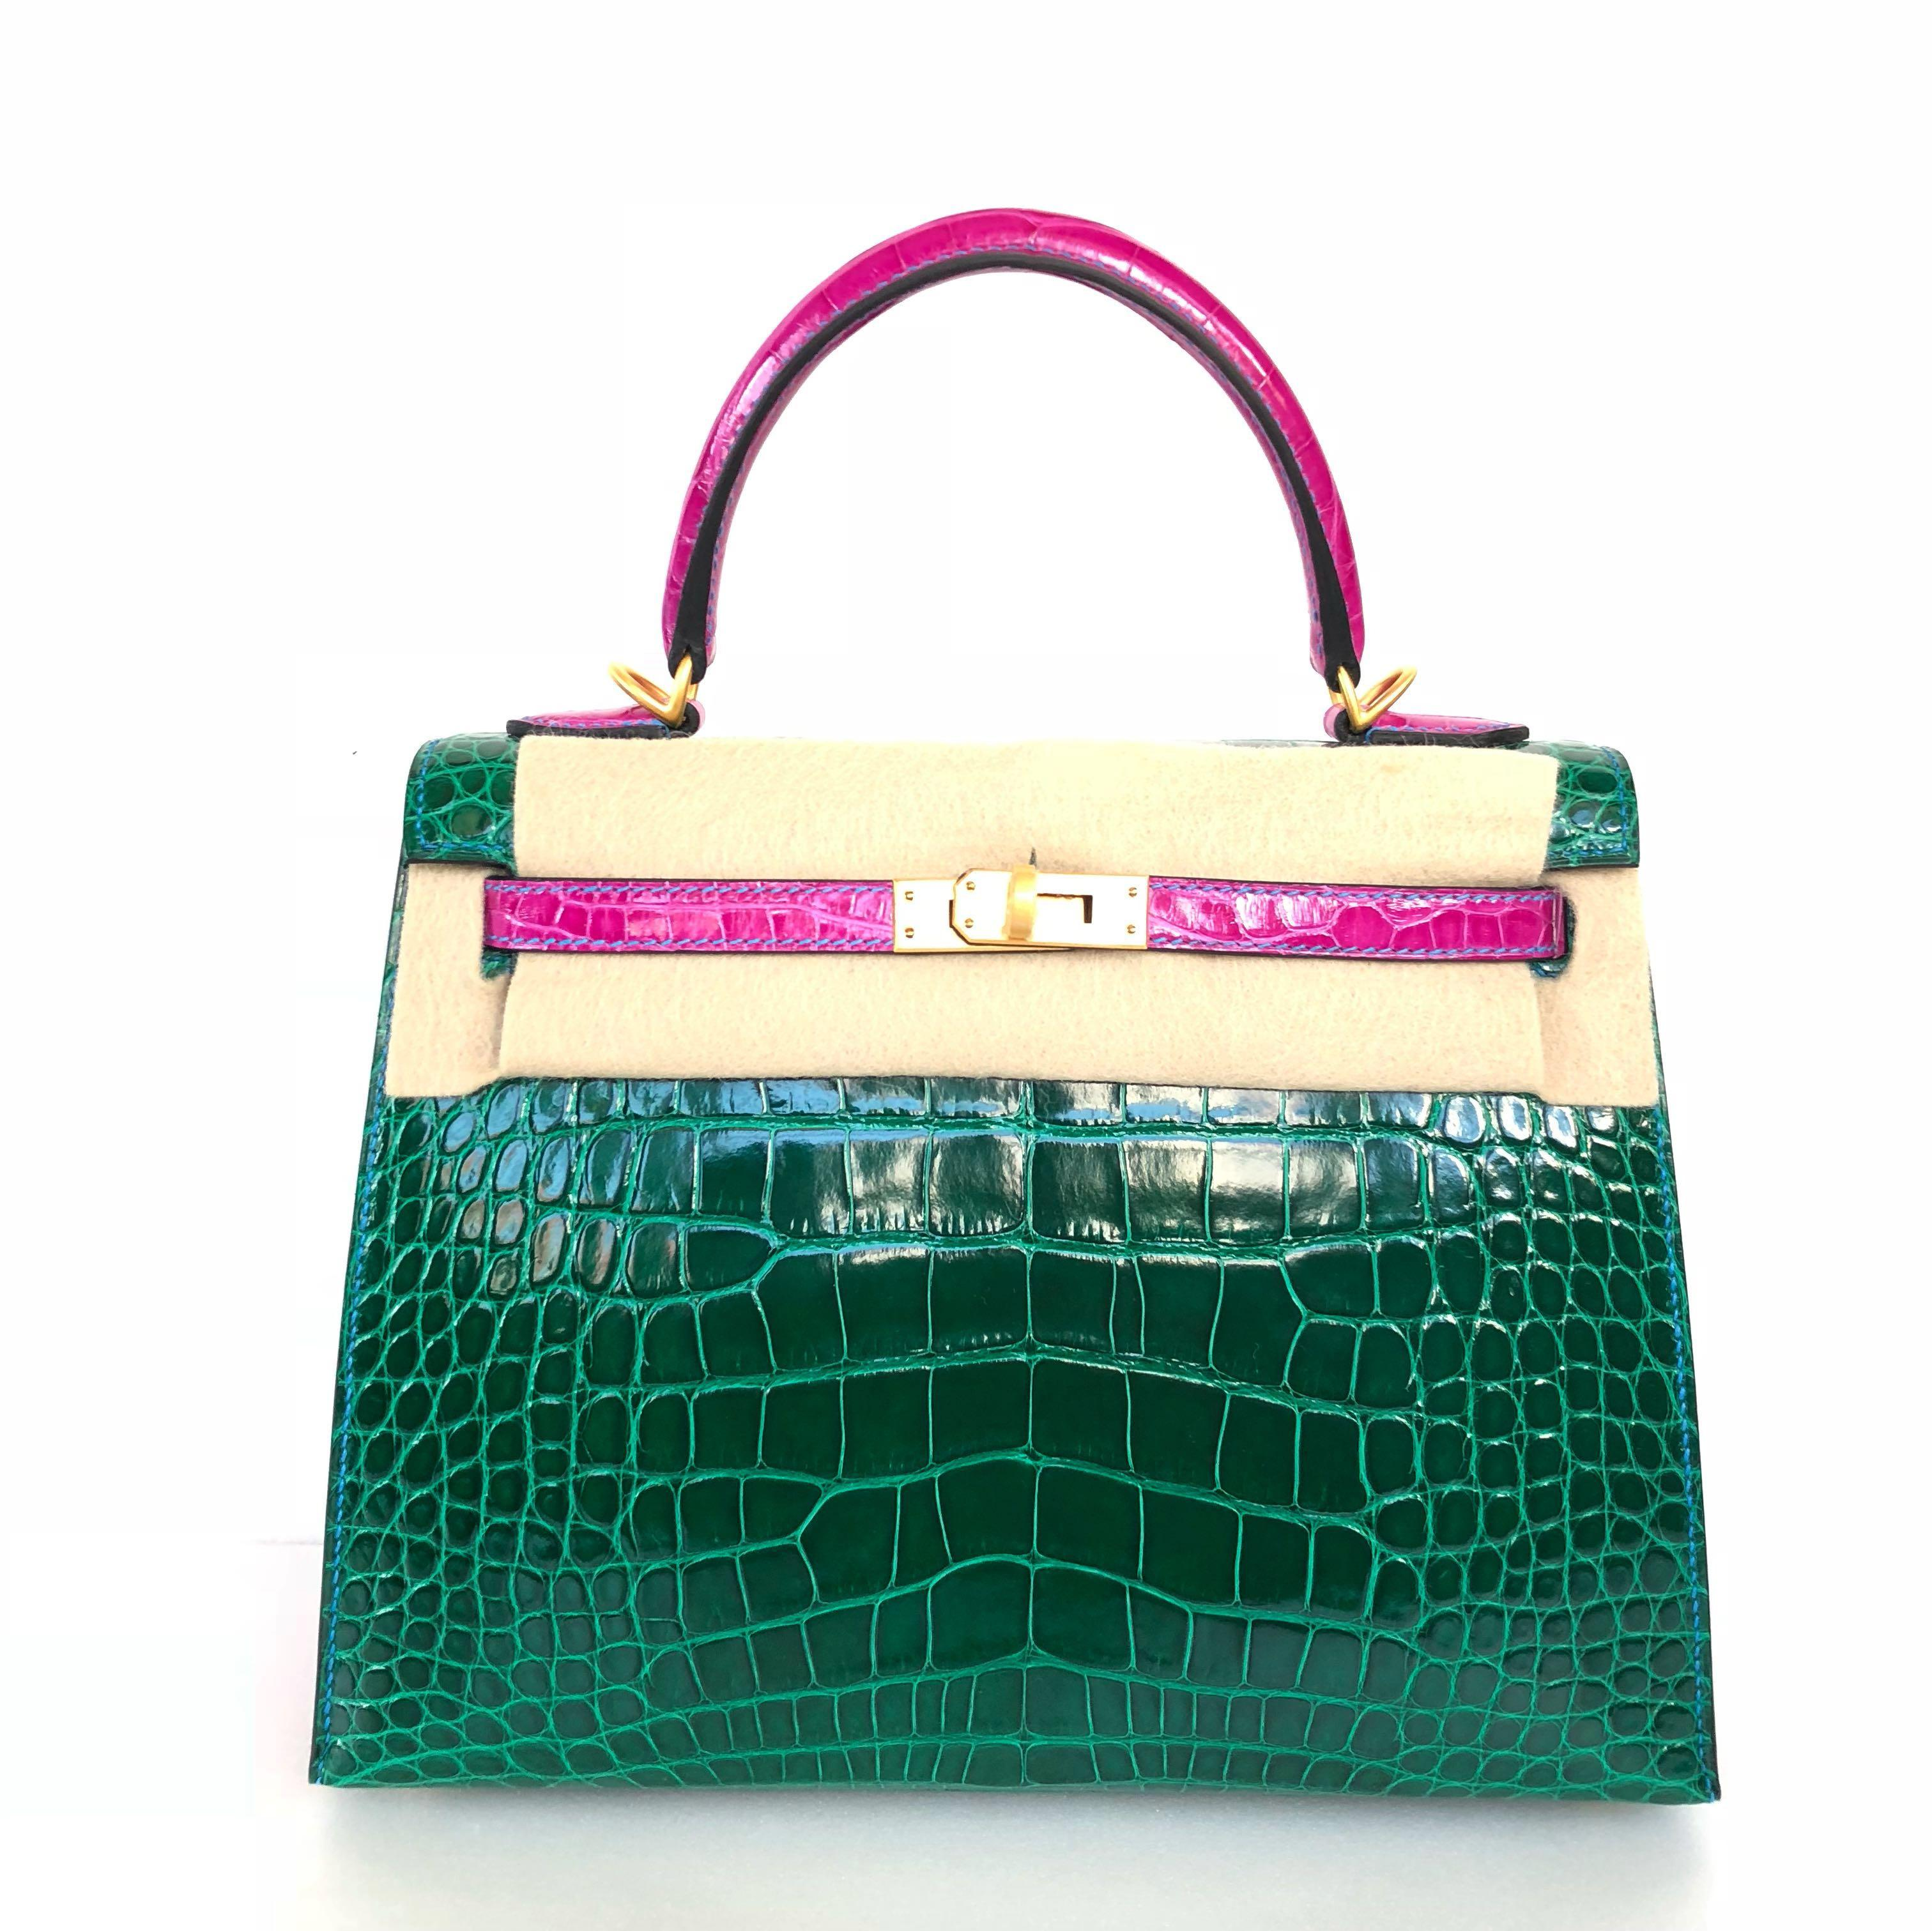 Hermes - HSS Special Order Vert Emerald / Rose Scherazade Shiny Alligator Kelly 25 Sellier with Contrasting Blue France Stitching with Brushed GHW